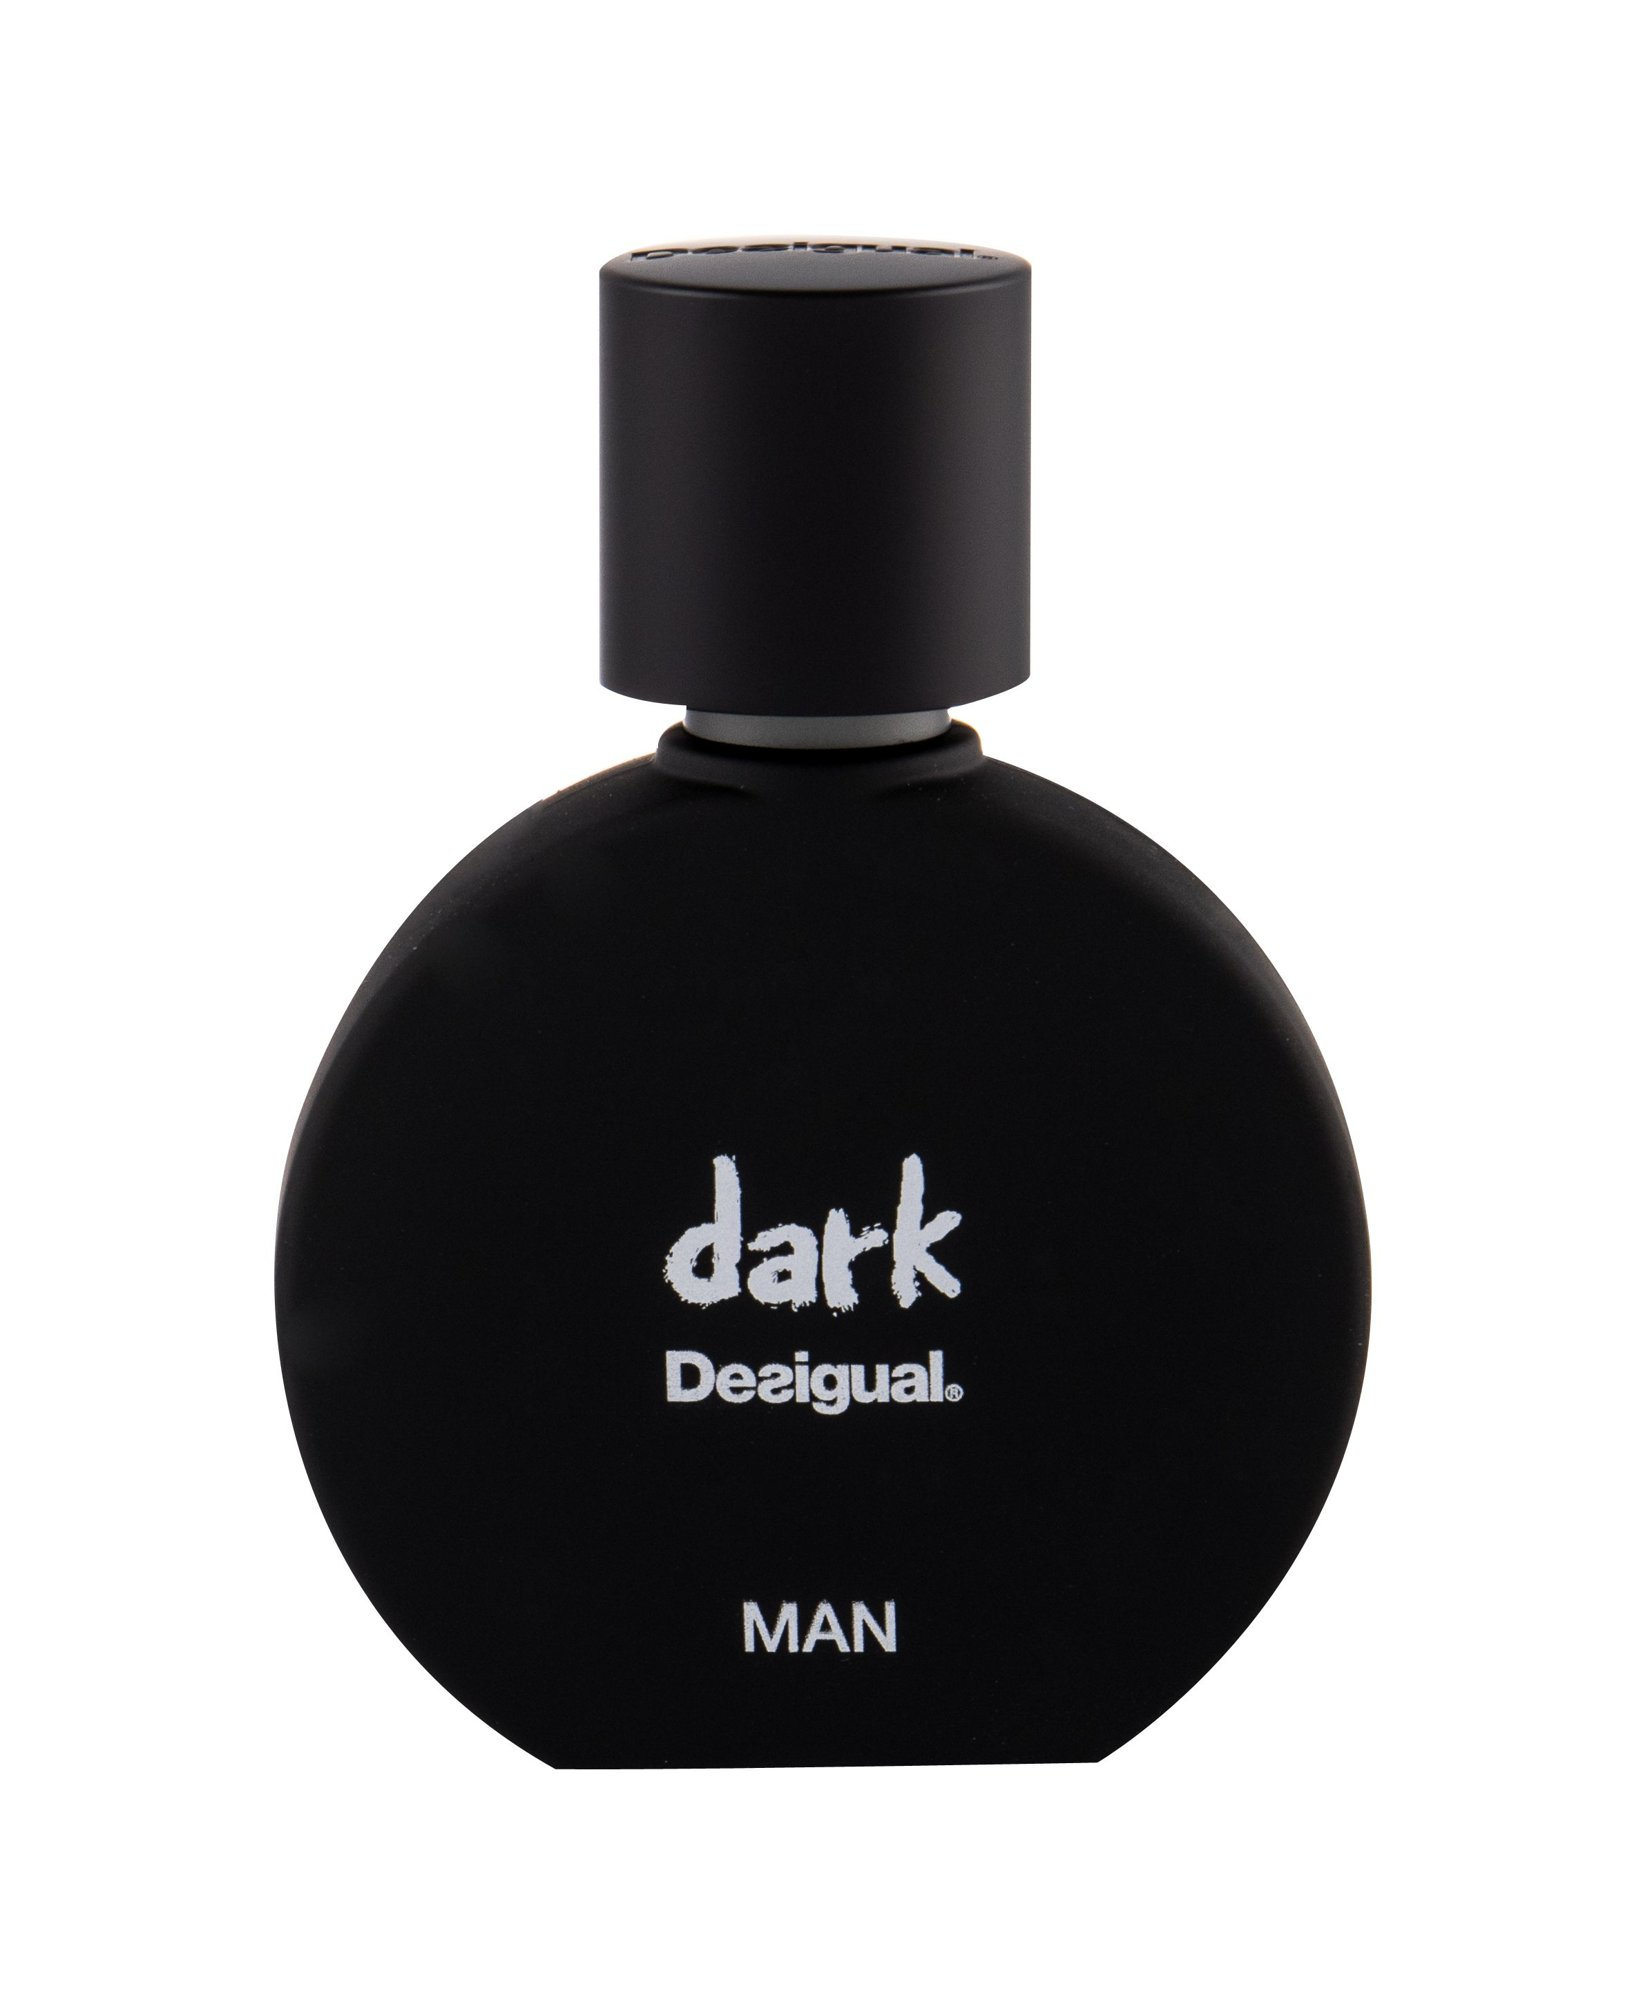 Desigual Dark Eau de Toilette 50ml